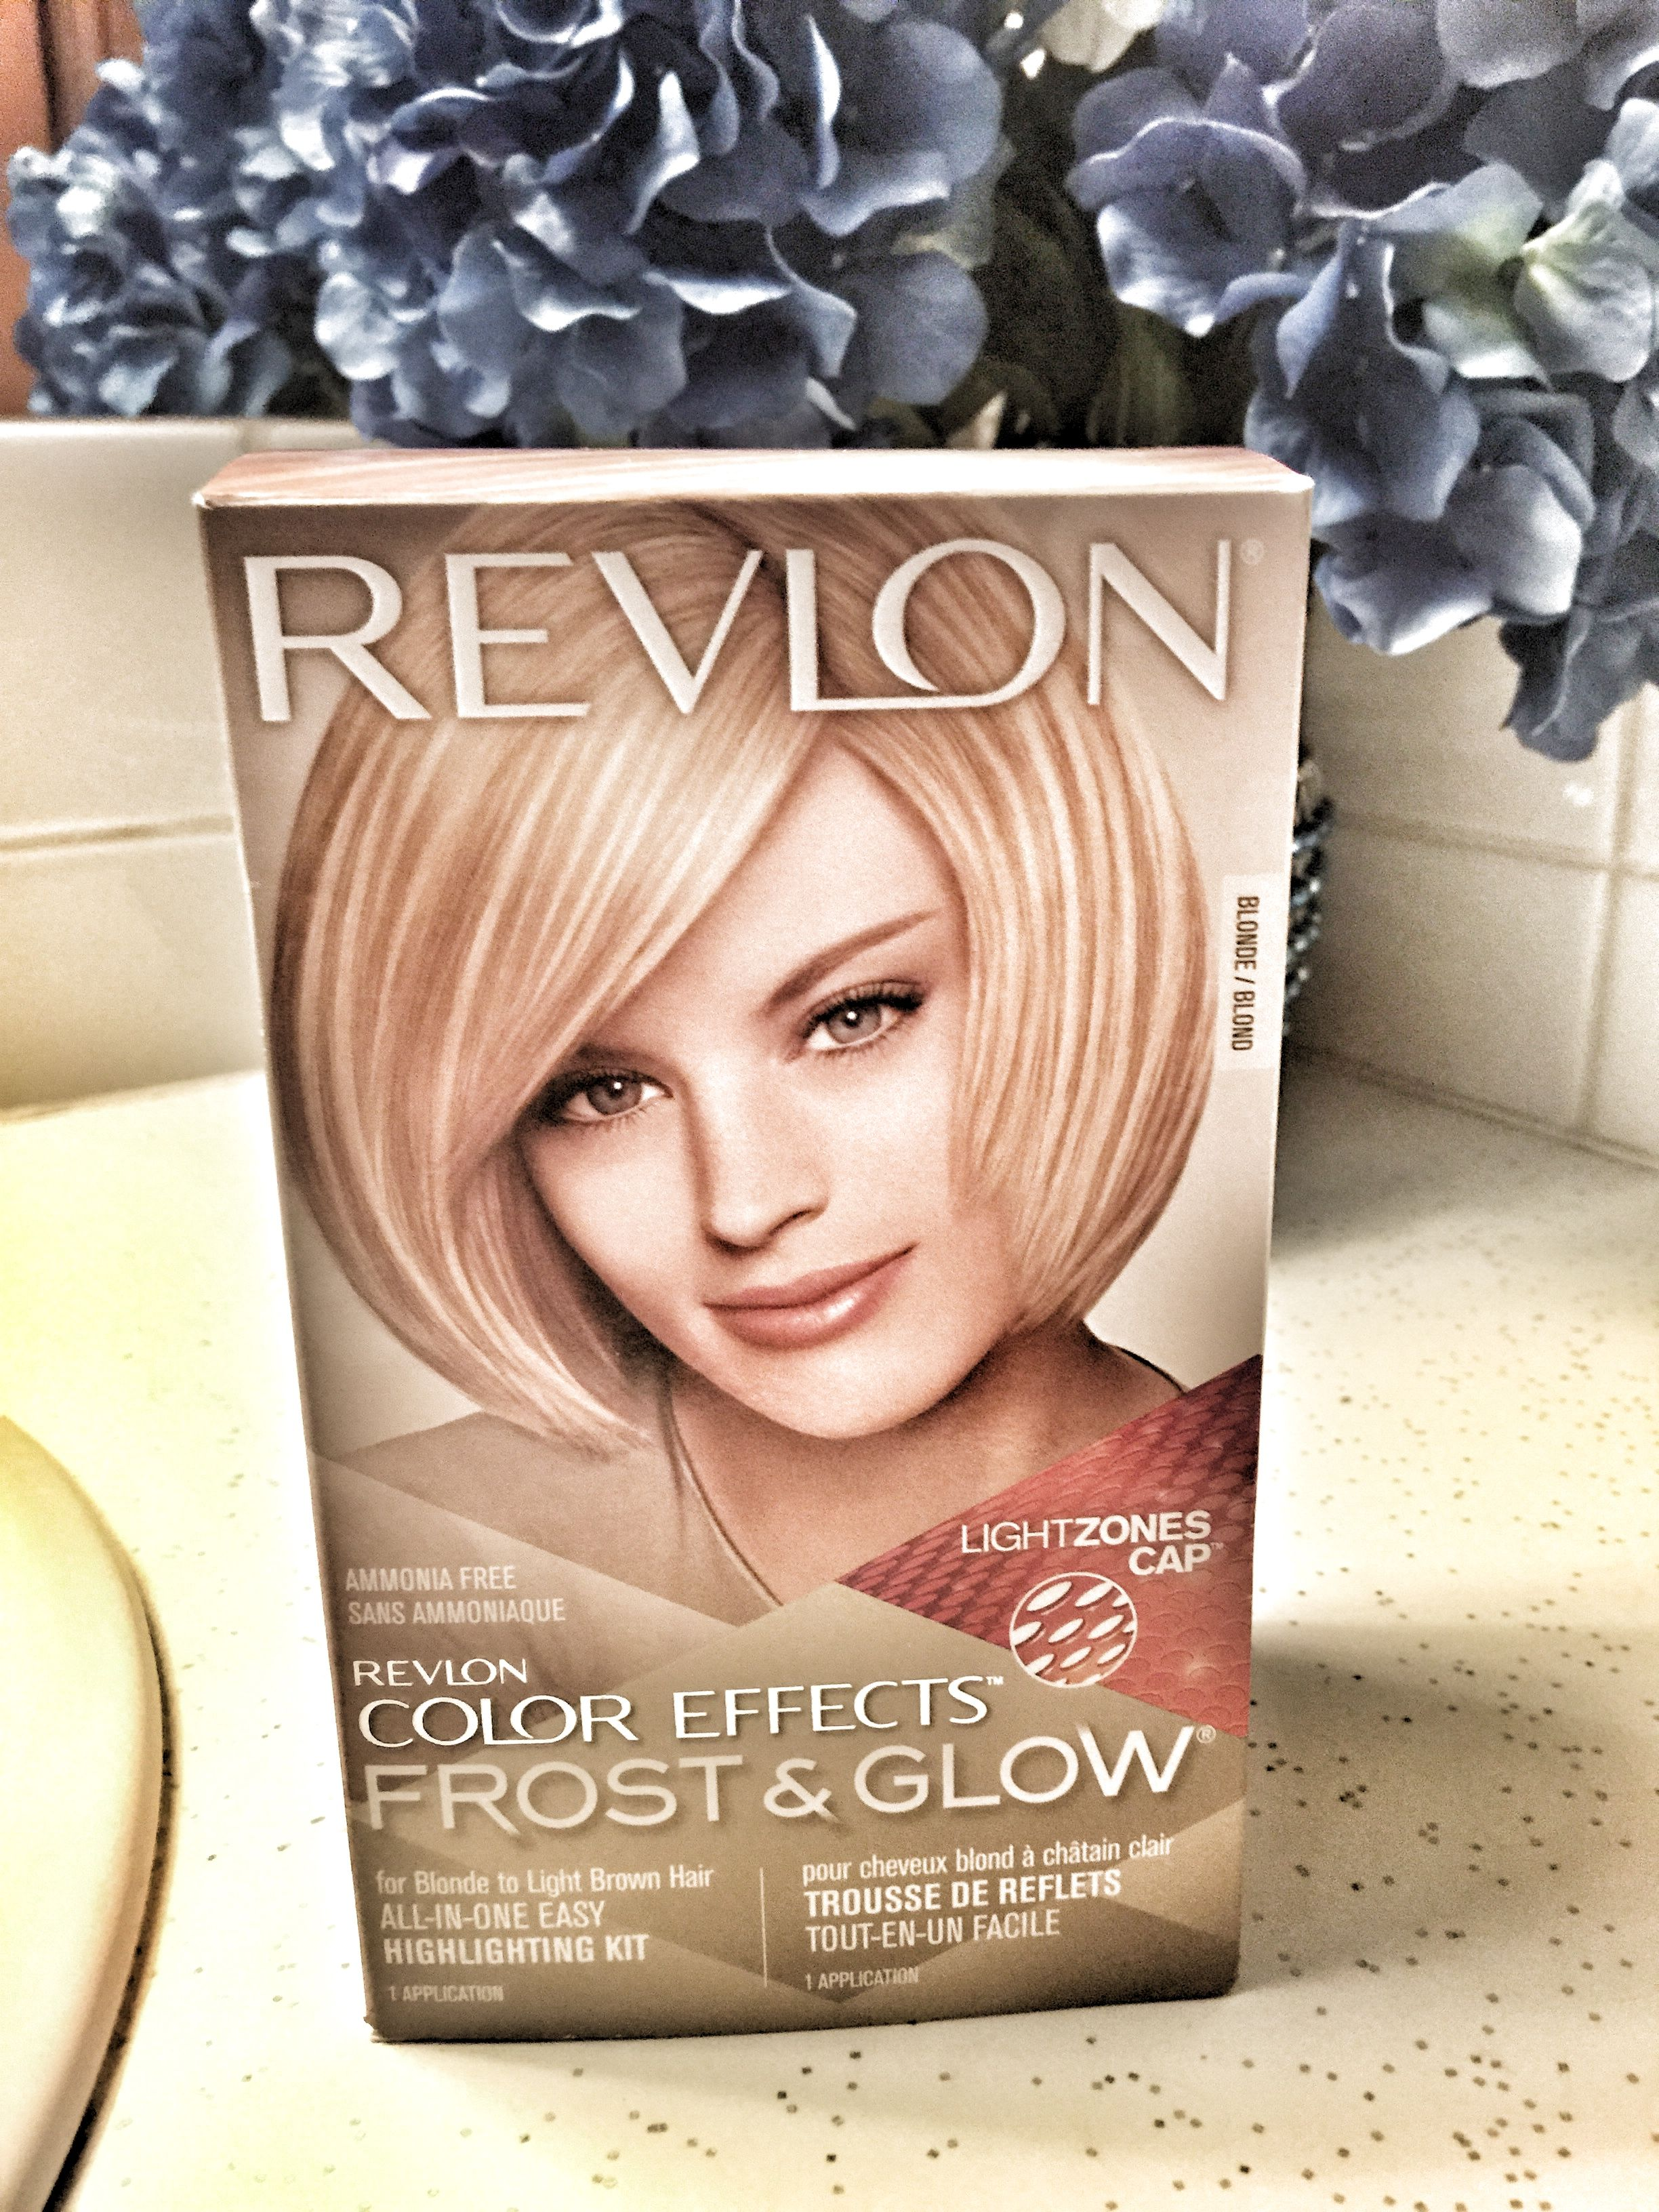 Love this product for great athome highlights beauty all about